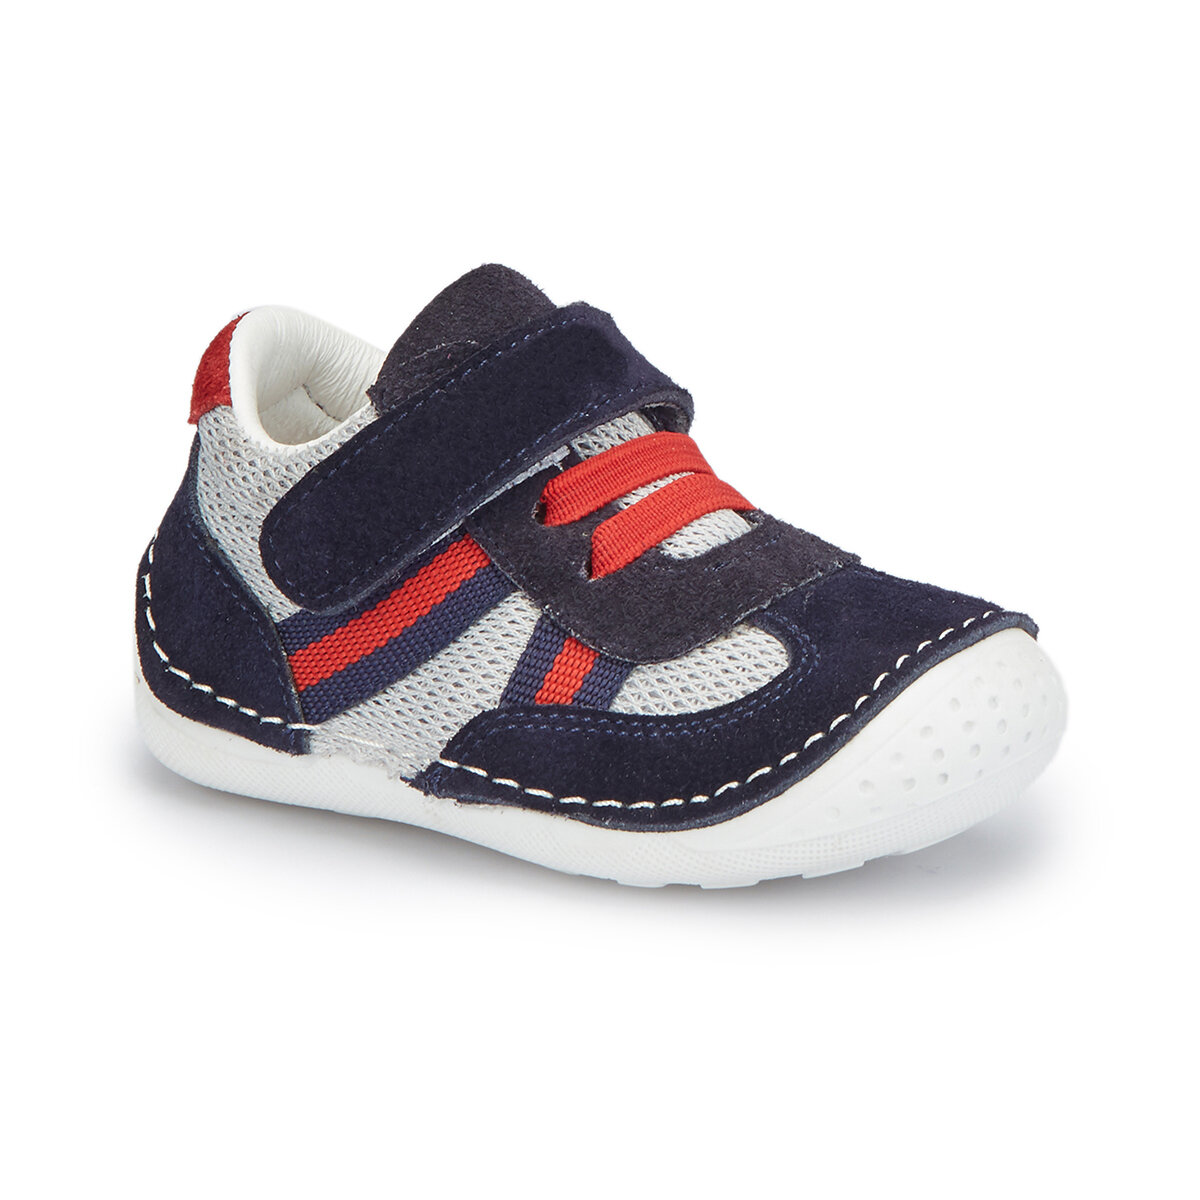 FLO 81.510046.I Navy Blue Male Child Sneaker Shoes Polaris